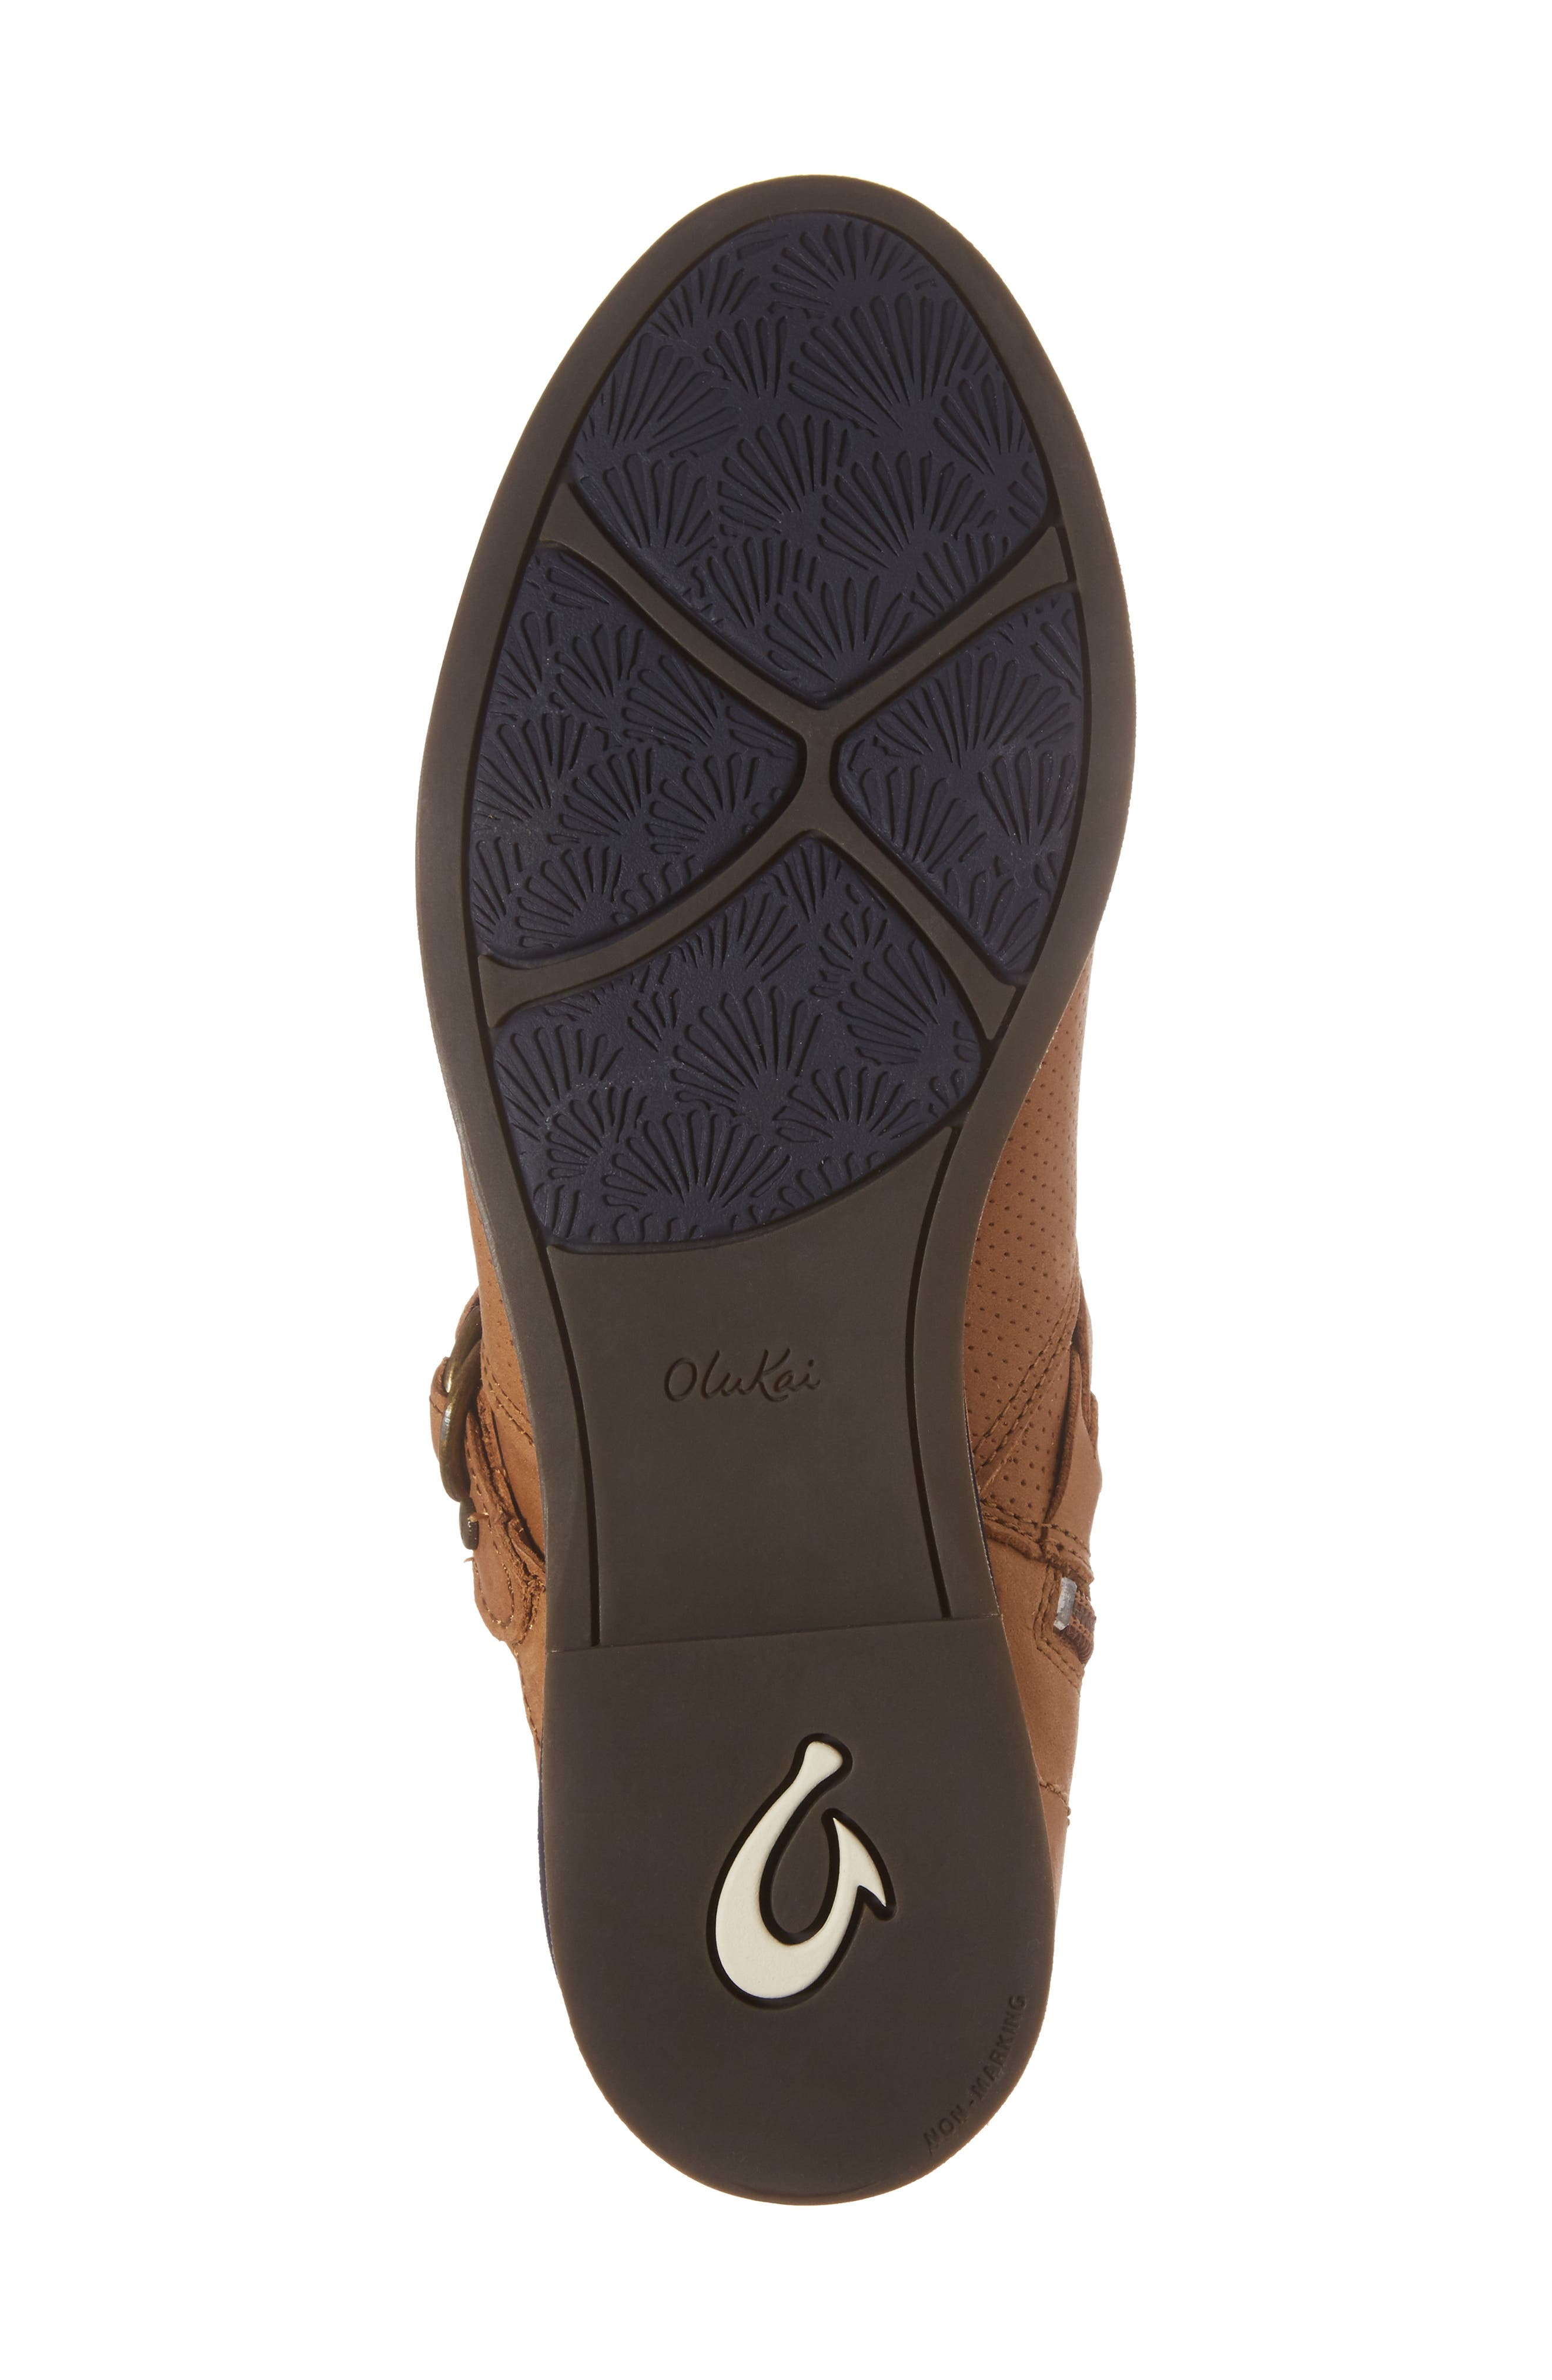 Ho'olu Perforated Bootie,                             Alternate thumbnail 6, color,                             Pecan/ Pecan Leather